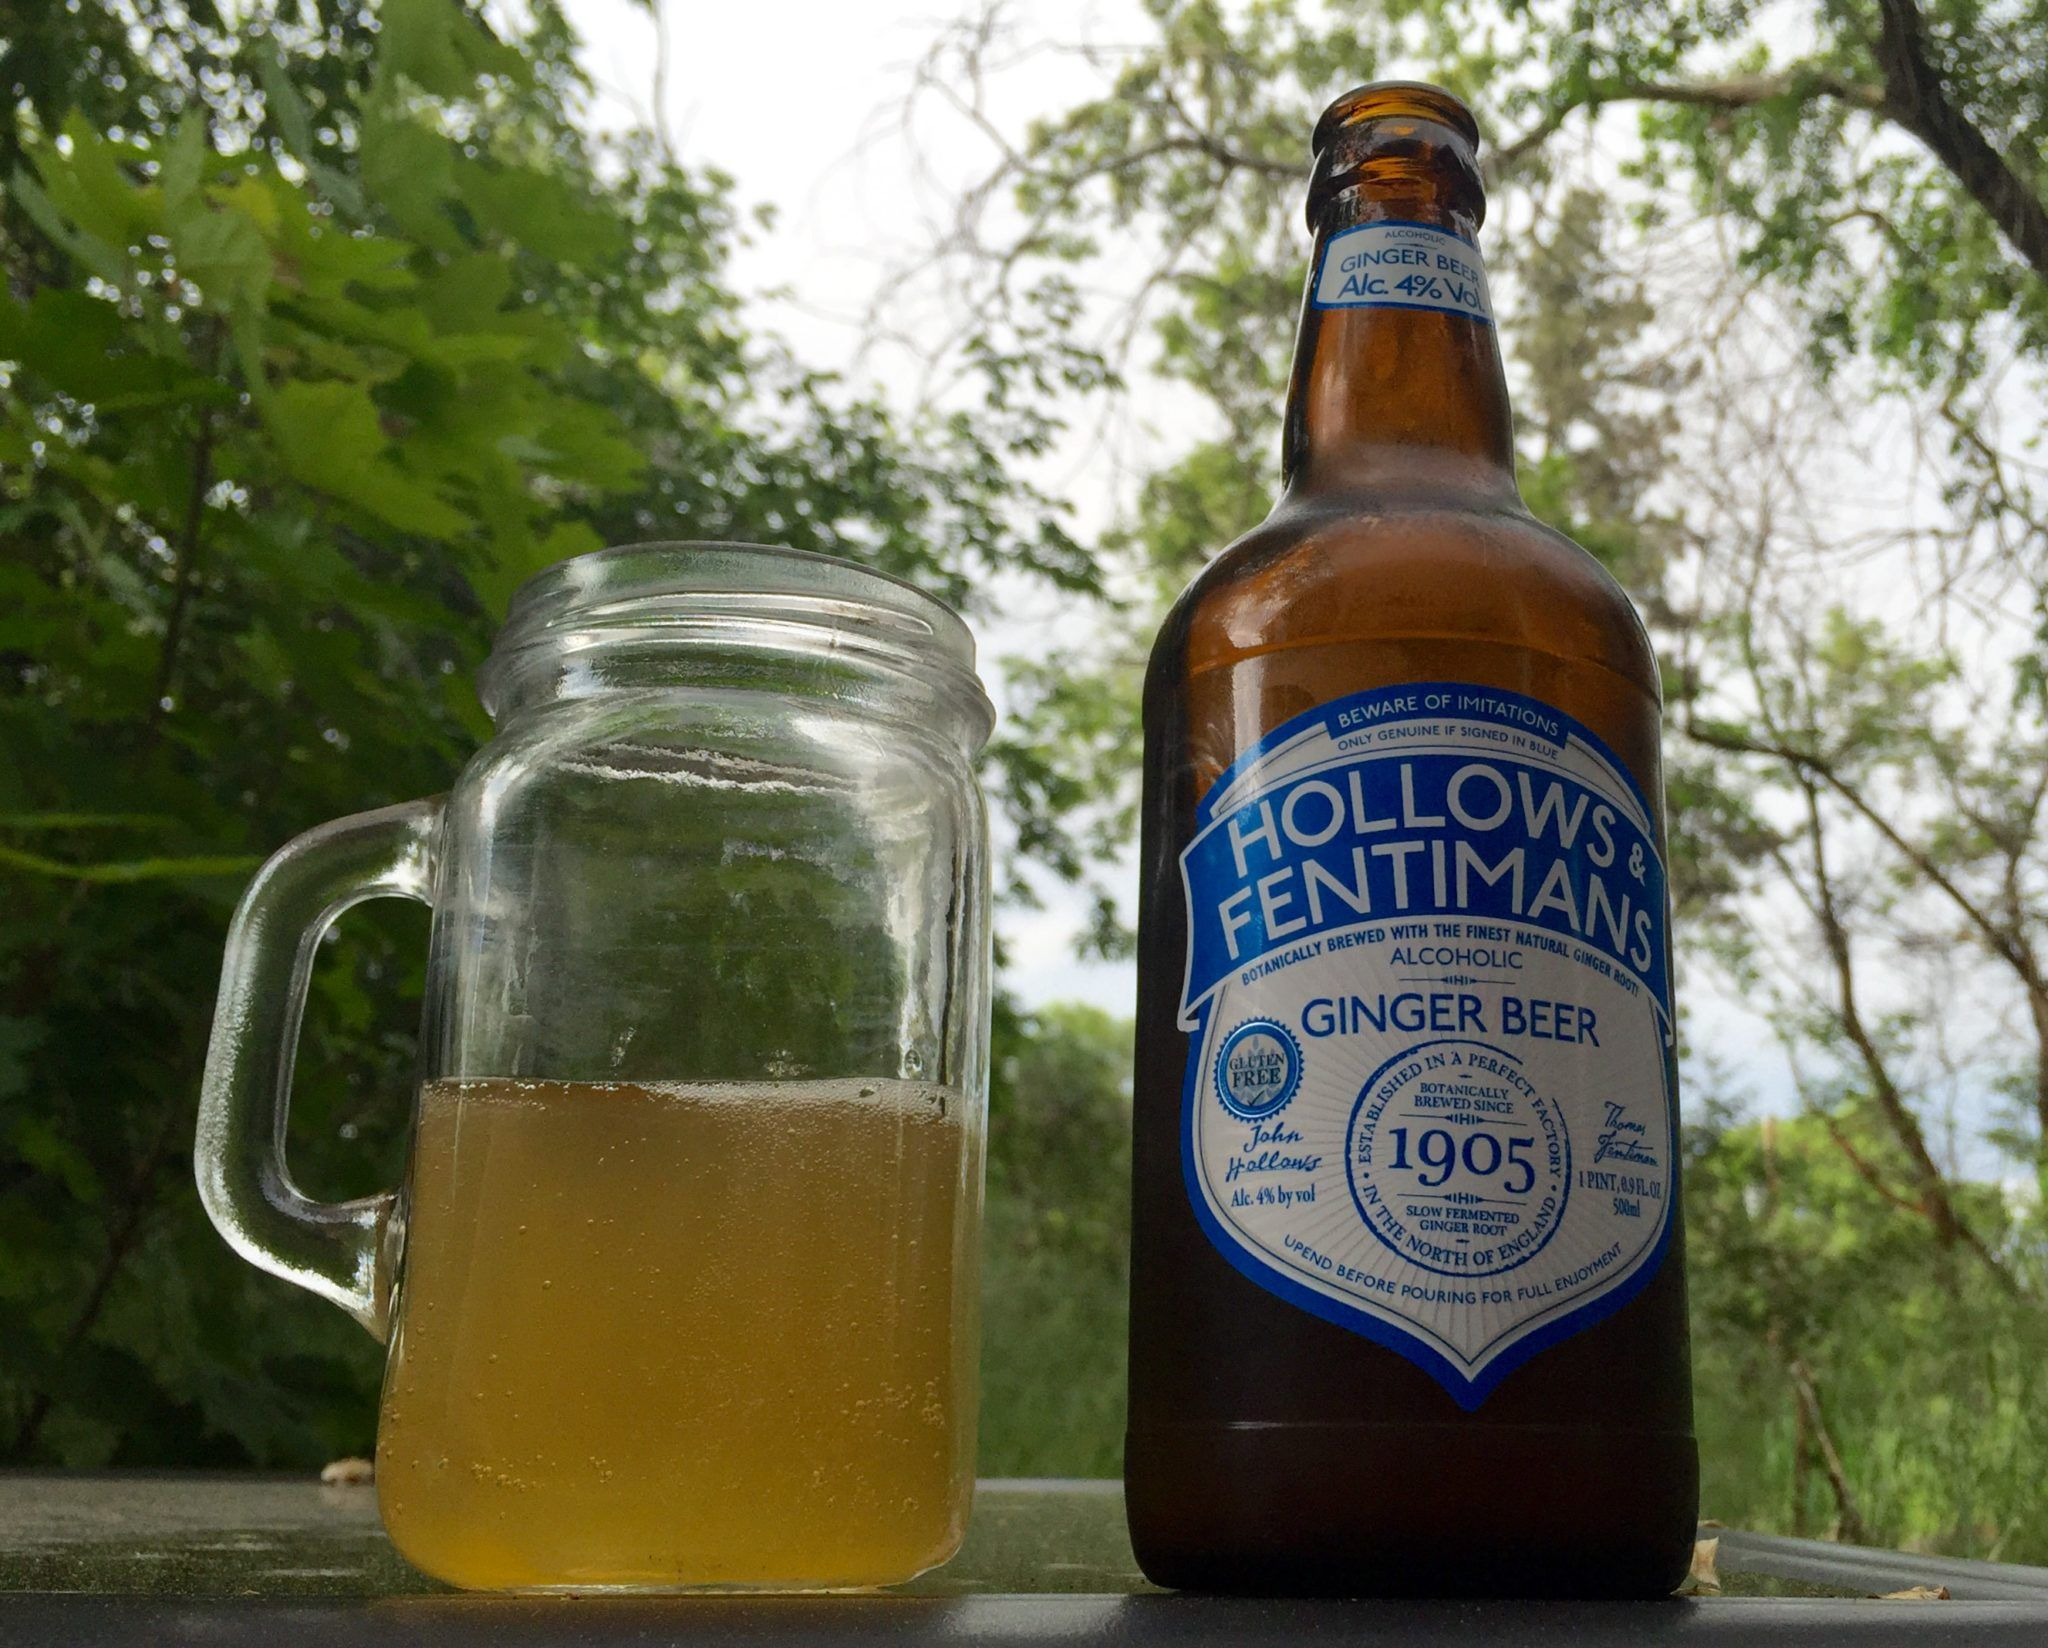 Gluten Free Beer Review Hollows and Fentimans Ginger Beer